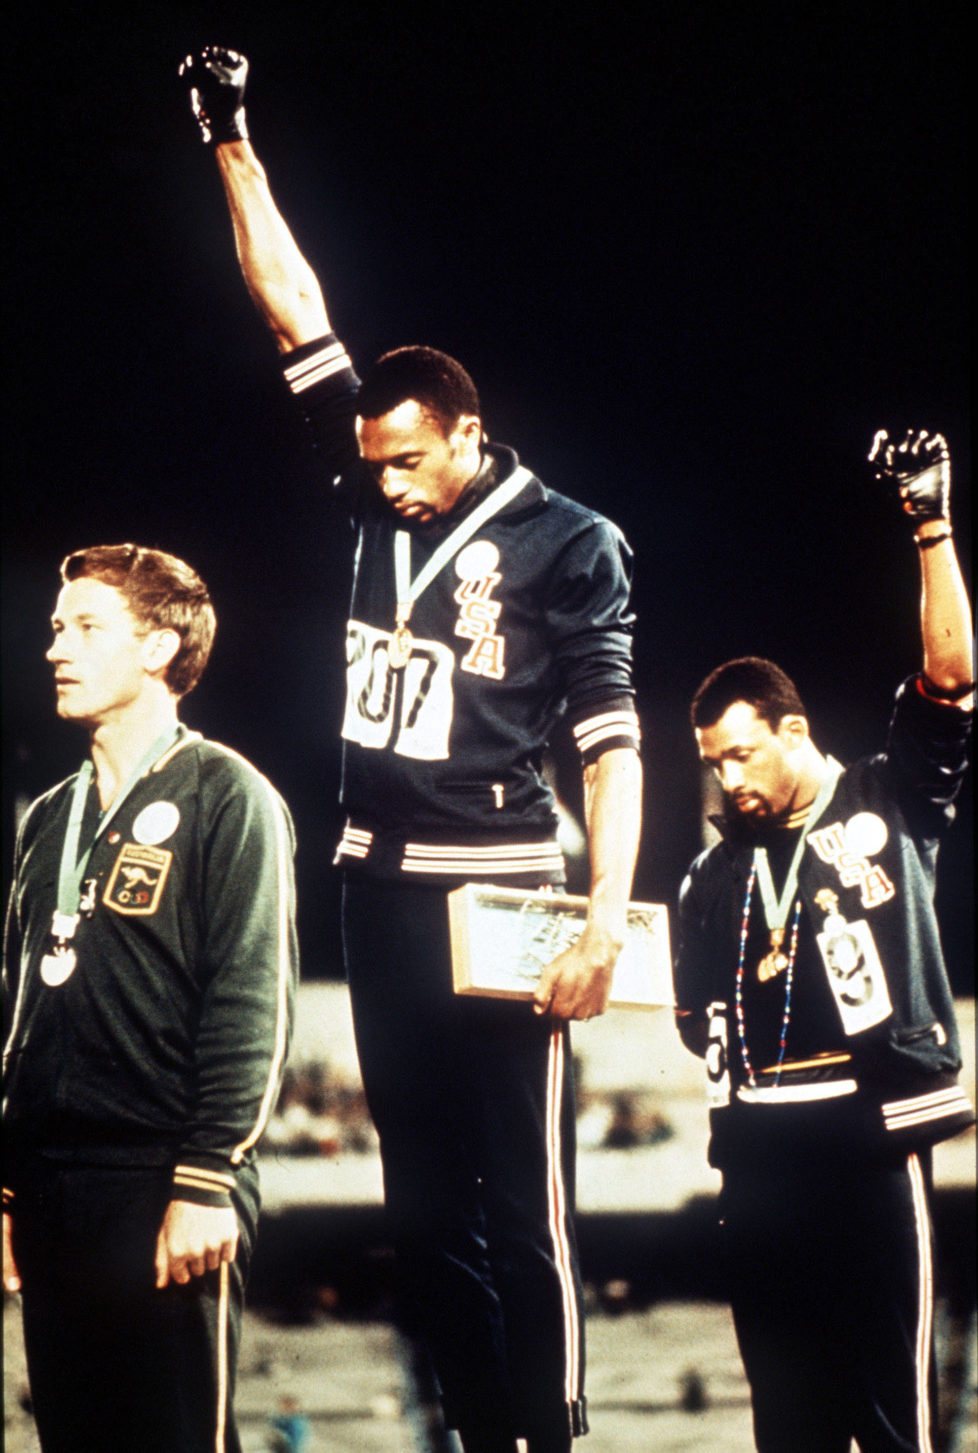 1968 Olympic Games, Mexico City, Mexico, Men's 200 Metres Final, USA gold medallist Tommie Smith (C) and bronze medallist John Carlos give the black power salutes as an anti-racial protest as they stand on the podium with Australian silver medallist Peter Norman (Photo by Rolls Press/Popperfoto/Getty Images)